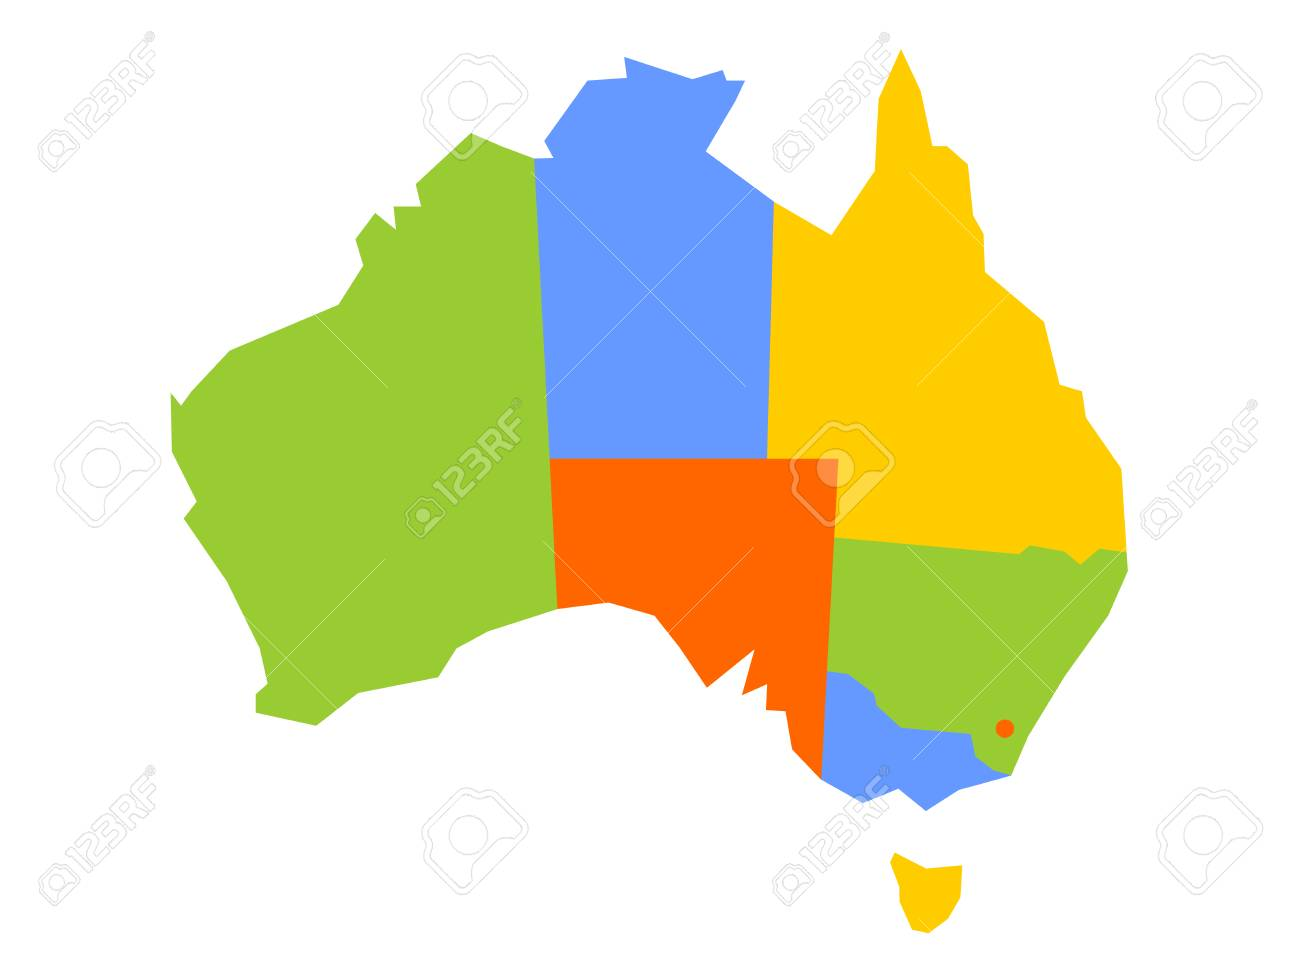 Colorful Blank Map Of Australia  Vector Illustration  Royalty Free     Colorful blank map of Australia  Vector illustration  Stock Vector    97919008